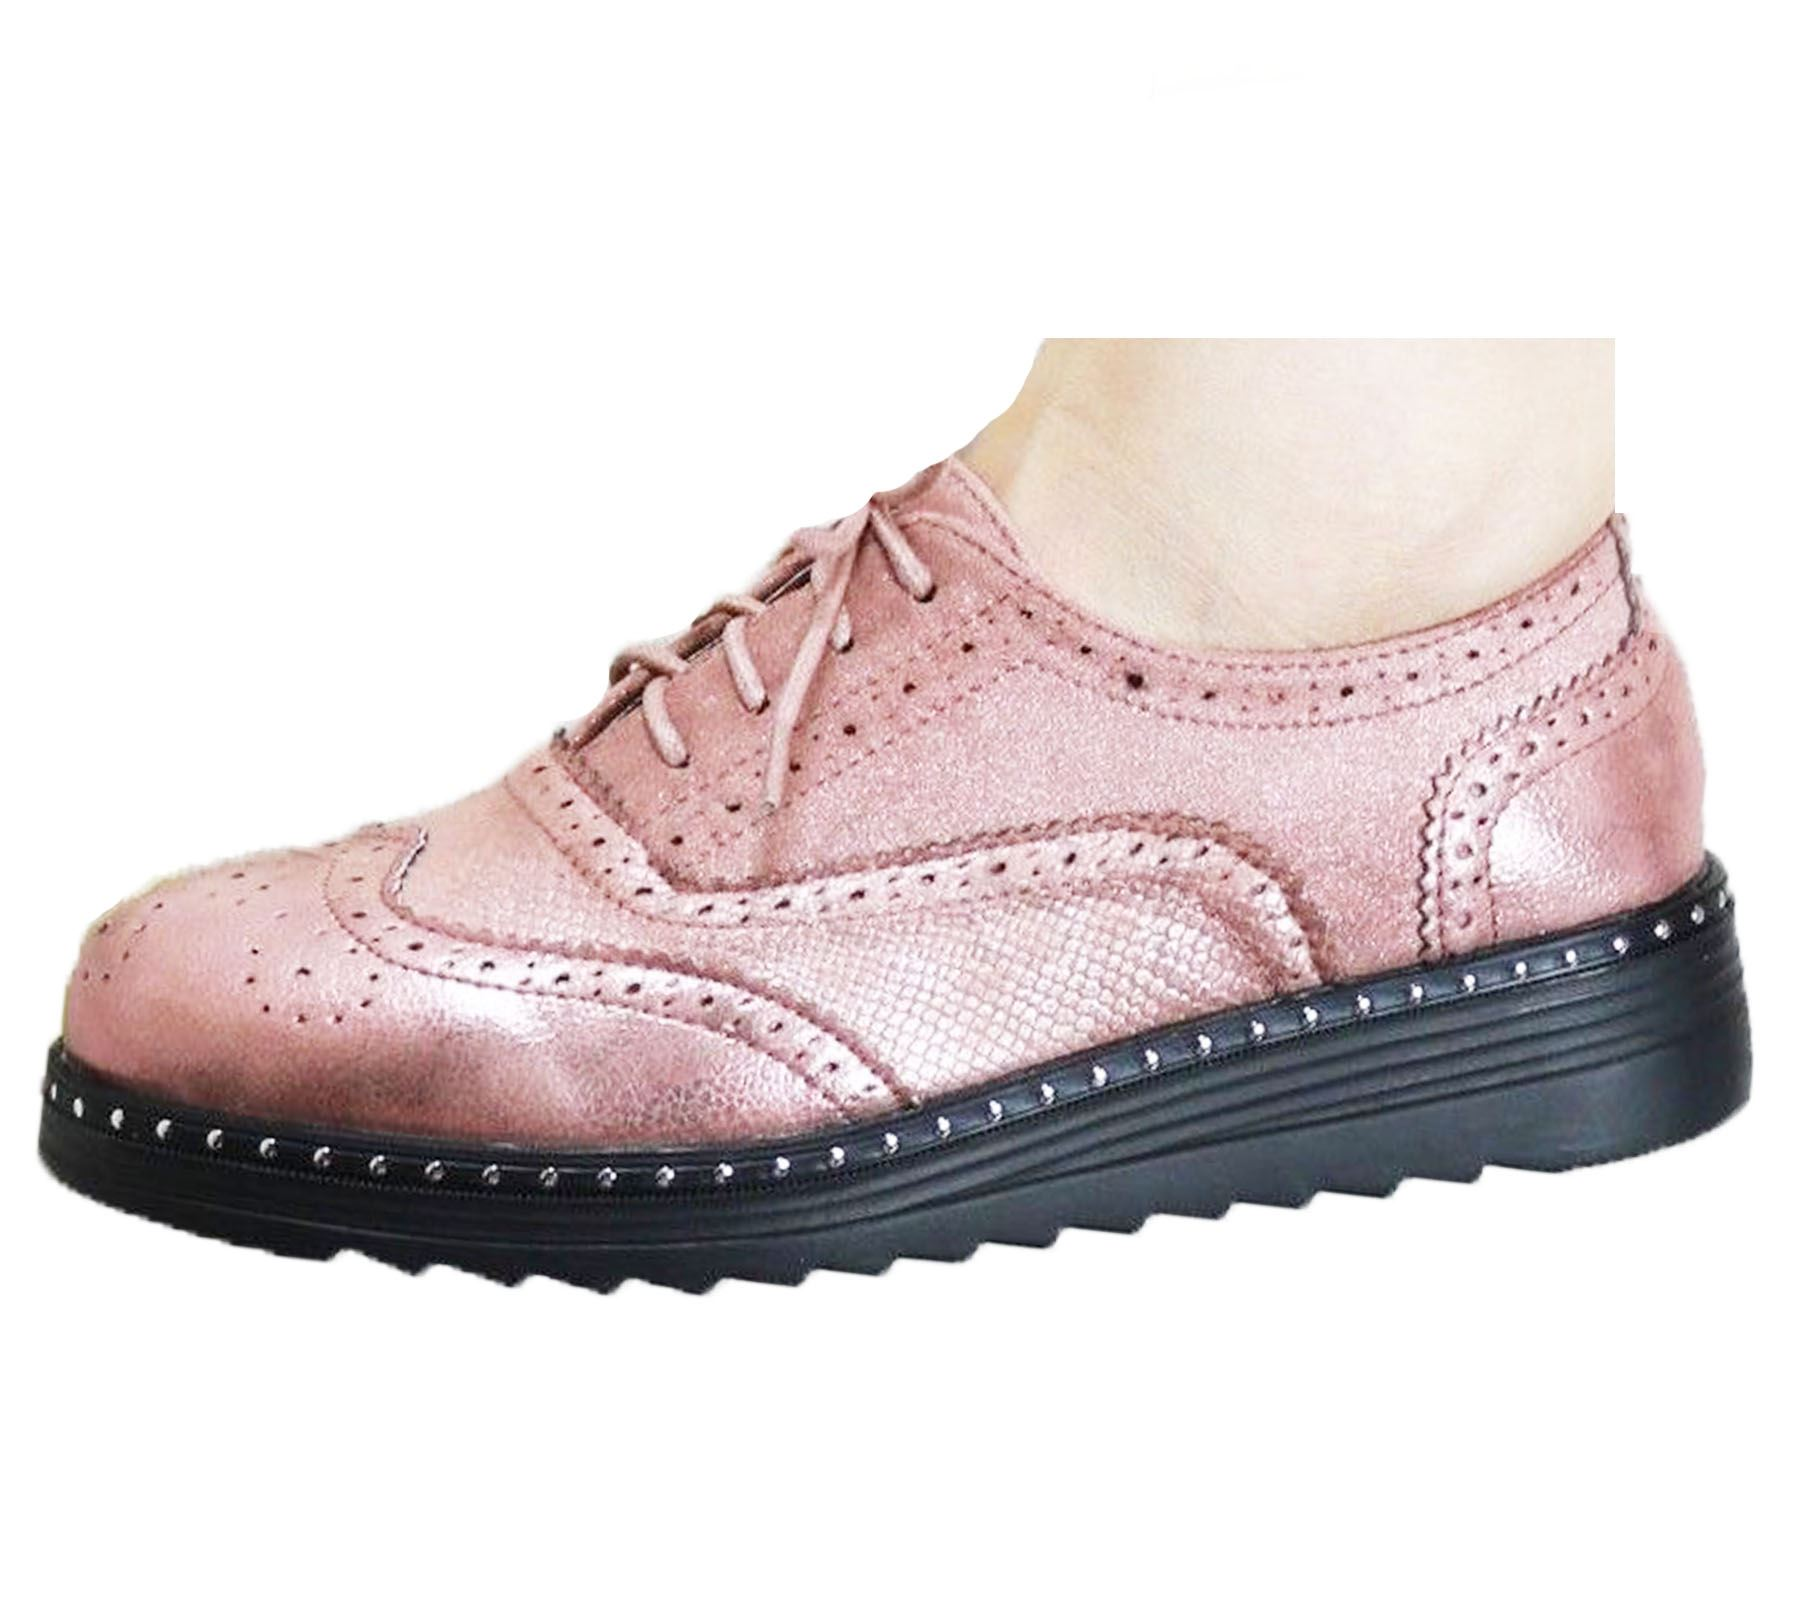 Ladies-Brogue-Lace-Up-Shoes-Womens-Oxford-Smart-Office-Loafers-Shoes miniatura 31